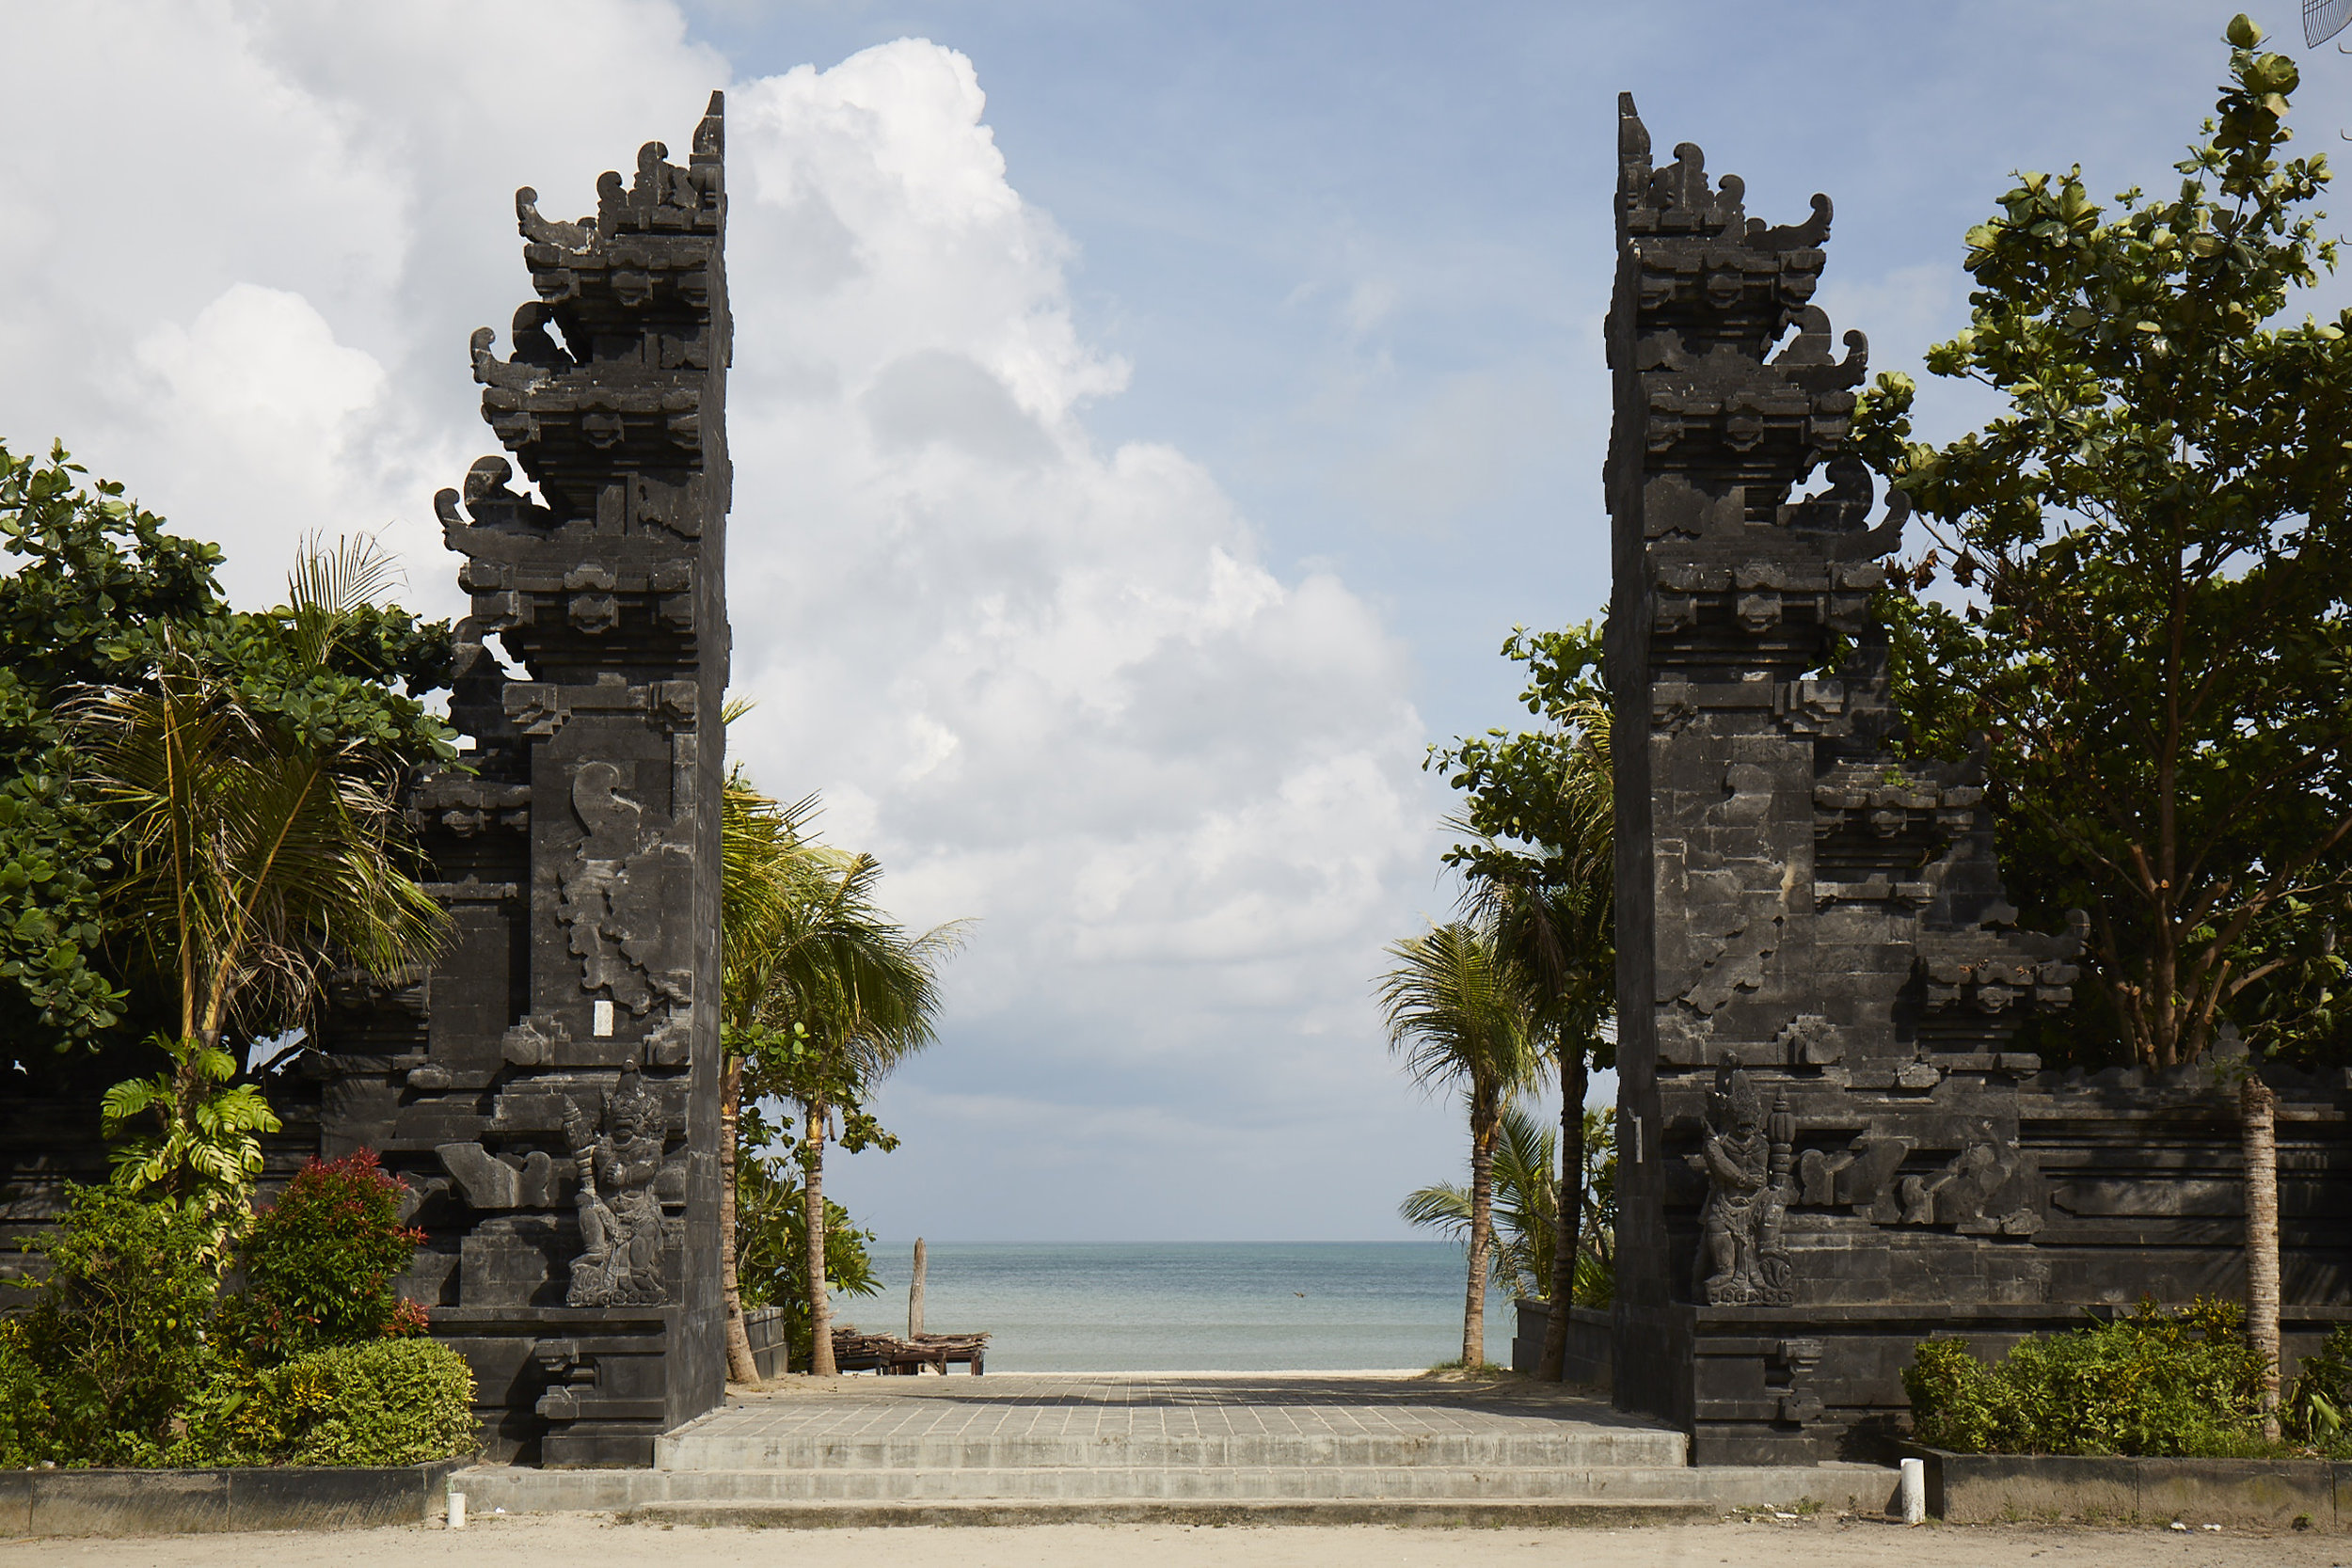 """View from my Motorbike at Jimbaran Beach, Bali, Indonesia. I was told by a Balinese Hindu """"HolyMan' this type of gate represents a holy place, on top of the mountain. You have the appearance of walking over the top and seeing the view below. Being on top of everything (the world...spiritually)."""